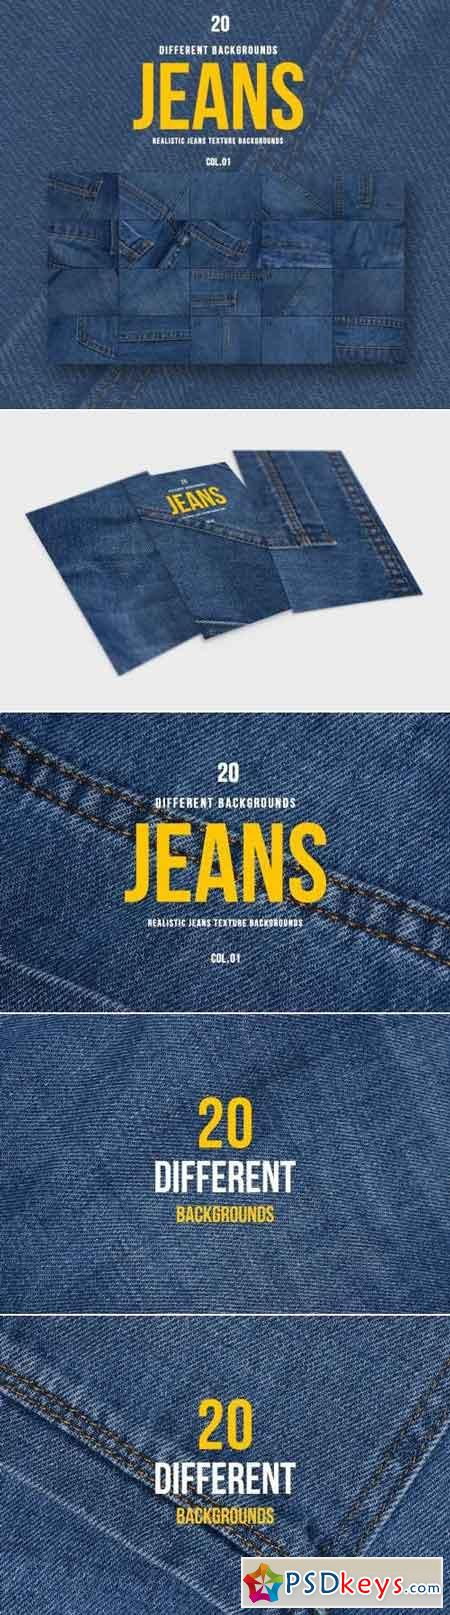 Realistic Jeans Texture Backgrounds COL.01